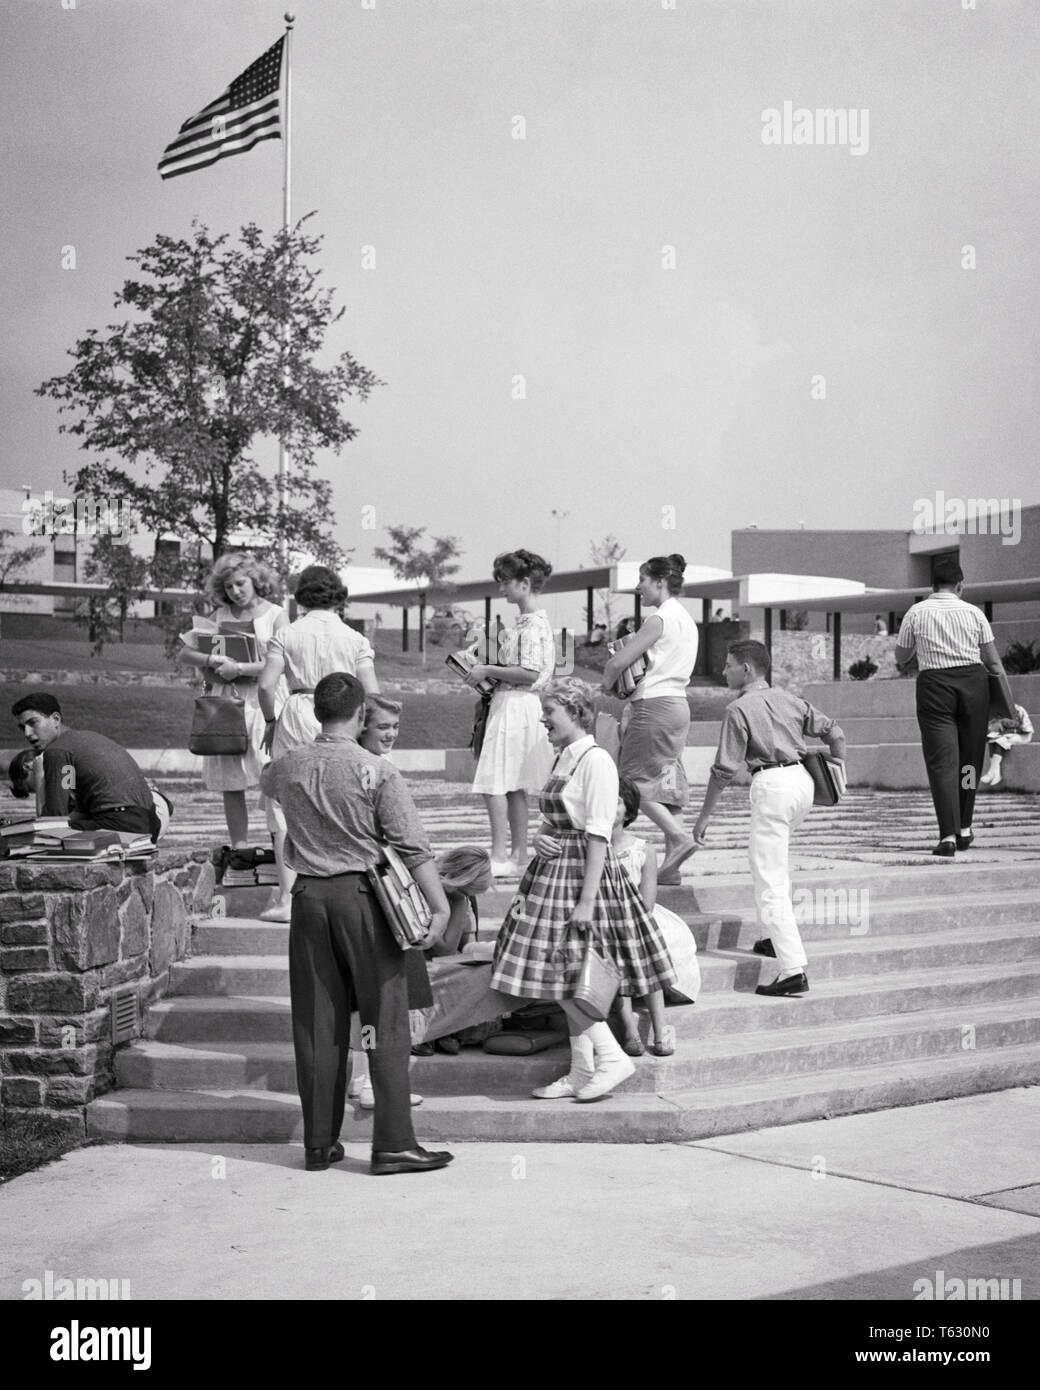 1960s 1950s TEENAGE STUDENTS ON STEPS OUTSIDE A   HIGH SCHOOL BUILDING - s8778 HAR001 HARS ARCHITECTURE FEMALES HEALTHINESS COPY SPACE FRIENDSHIP FULL-LENGTH PERSONS MALES TEENAGE GIRL TEENAGE BOY BUILDINGS B&W HAPPINESS PROPERTY STYLES NETWORKING EXCITEMENT EXTERIOR HIGH SCHOOL HIGH SCHOOLS REAL ESTATE CONNECTION STRUCTURES STYLISH TEENAGED EDIFICE FASHIONS GROWTH JUVENILES TOGETHERNESS BLACK AND WHITE CAUCASIAN ETHNICITY HAR001 OLD FASHIONED - Stock Image